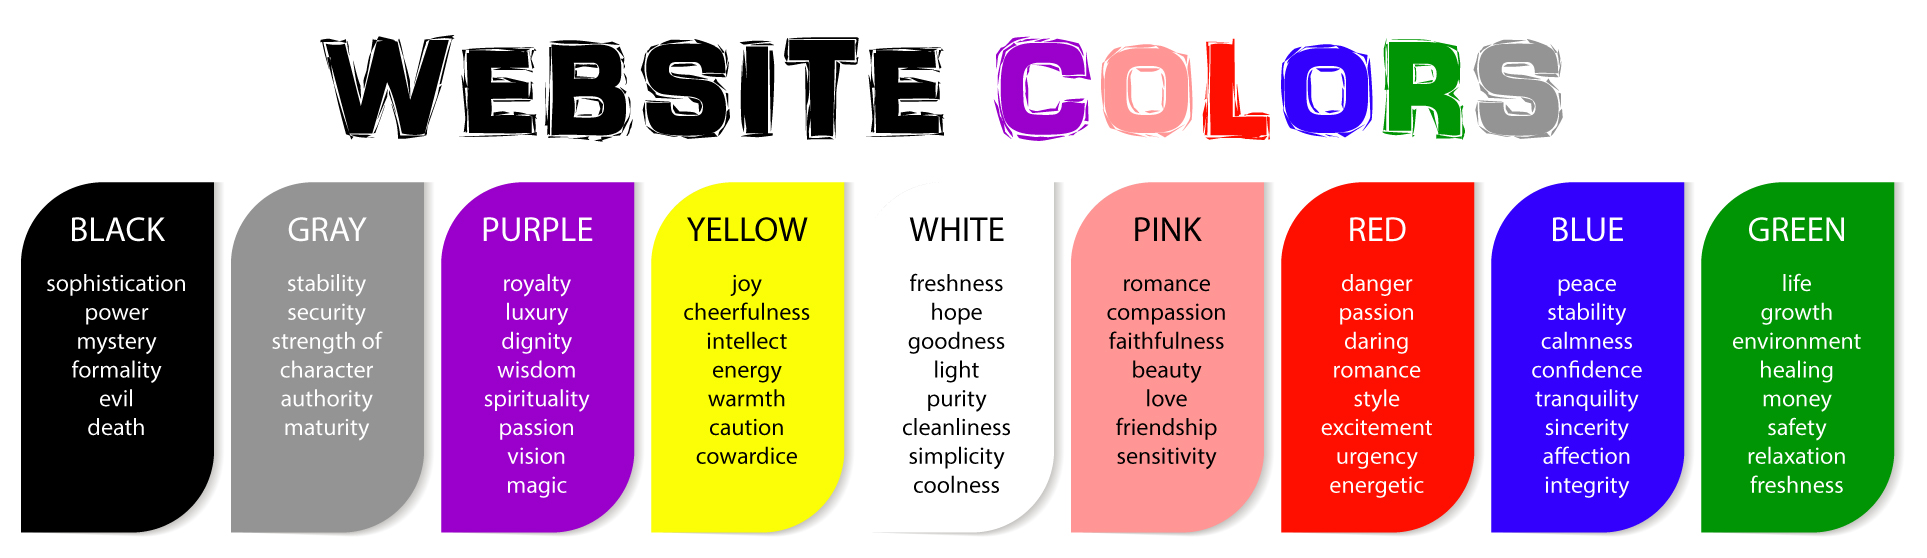 Website Colors 03 01 2016